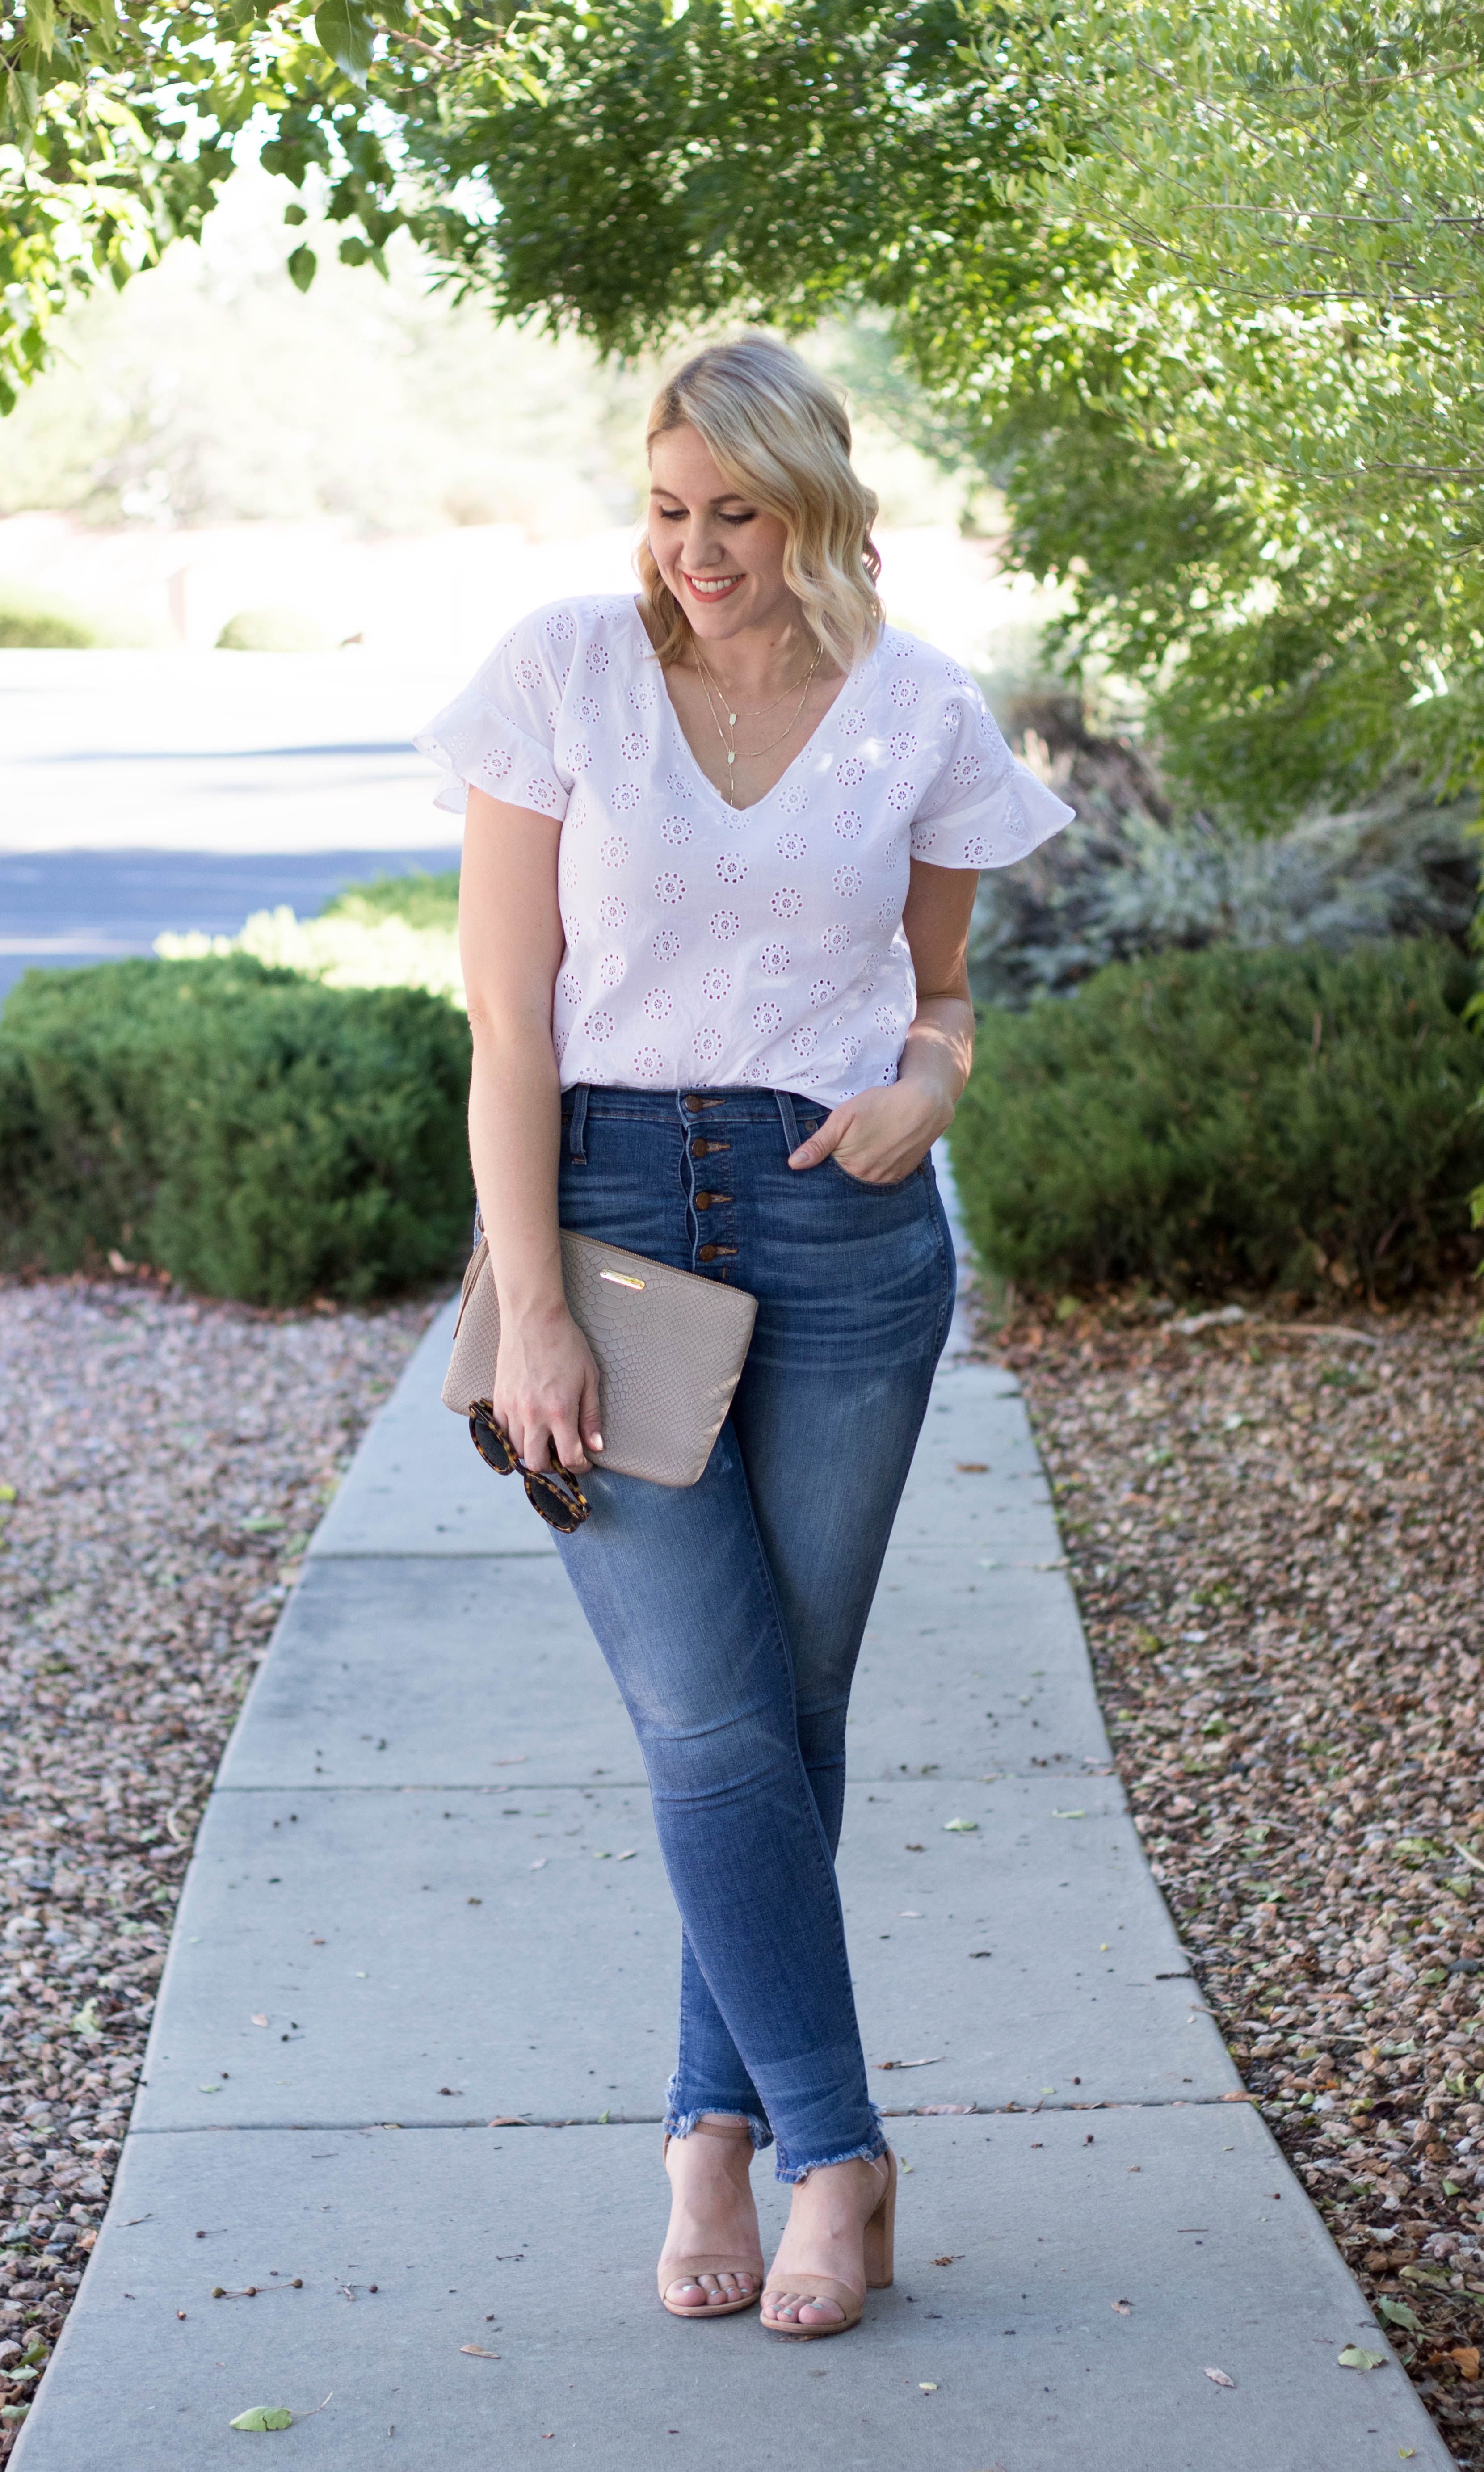 summer date night style #summerfashion #datenightstyle #madewelloutfit #madewelljeans